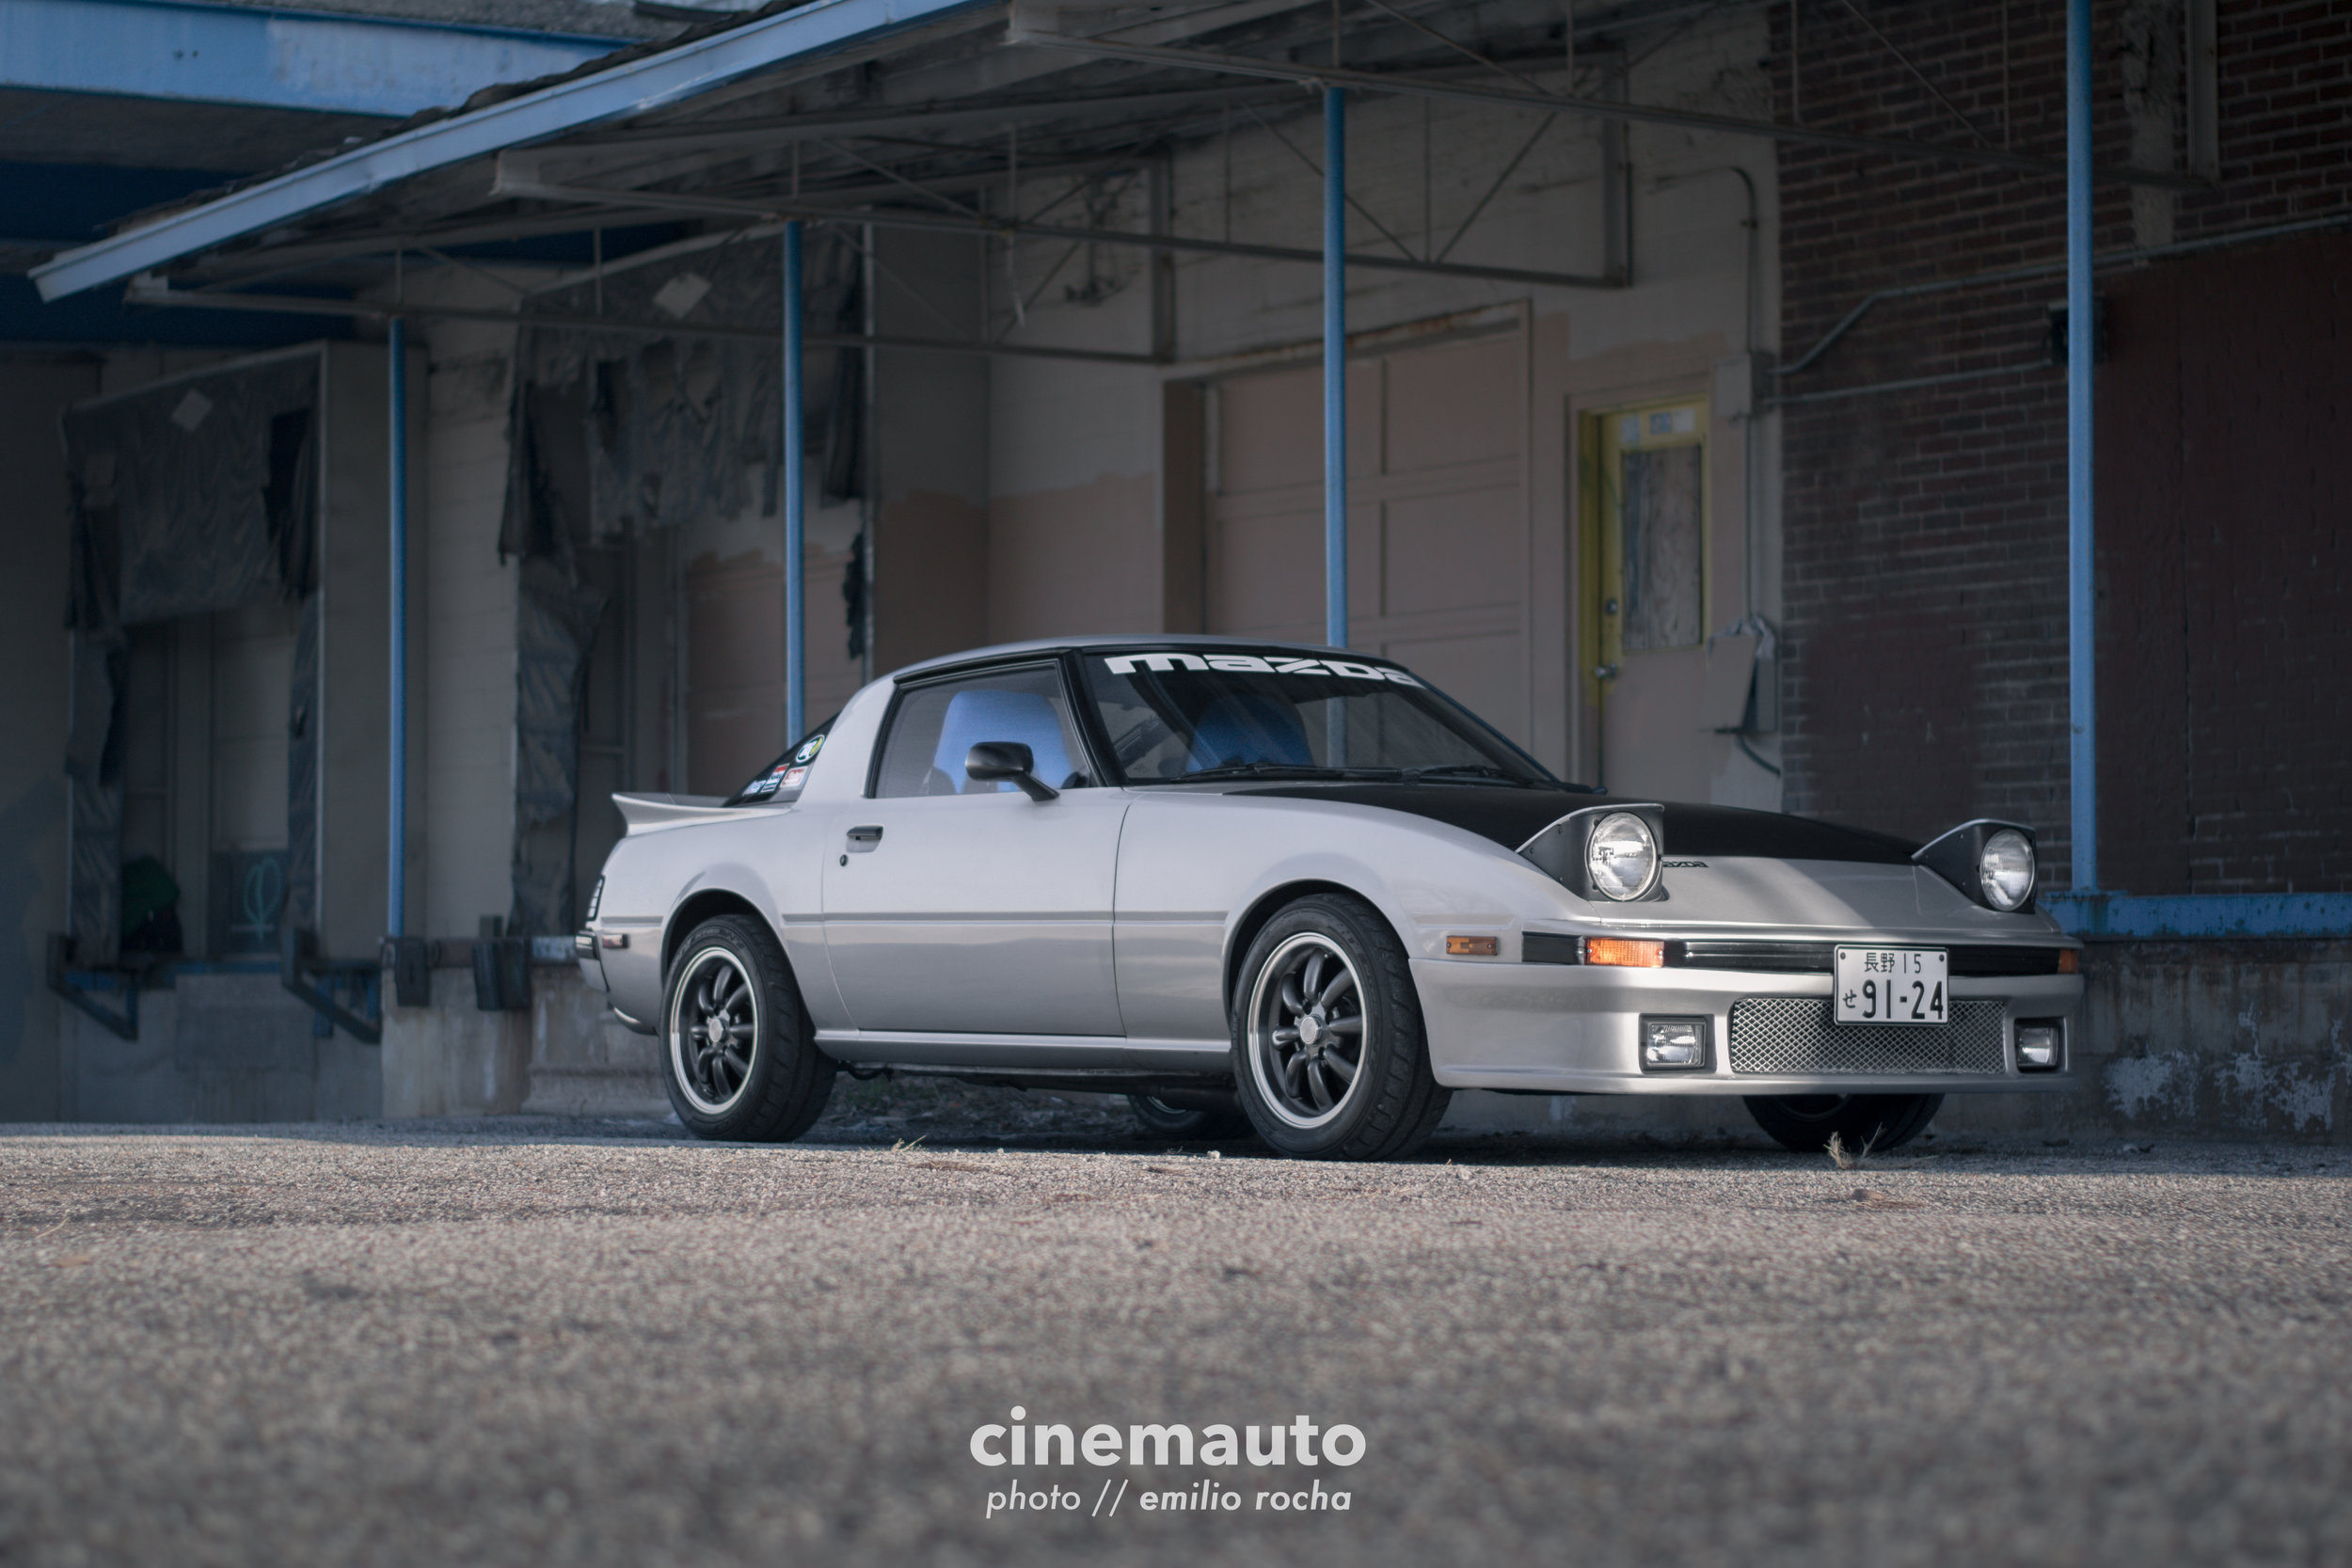 Cinemauto-RX7-5.jpg